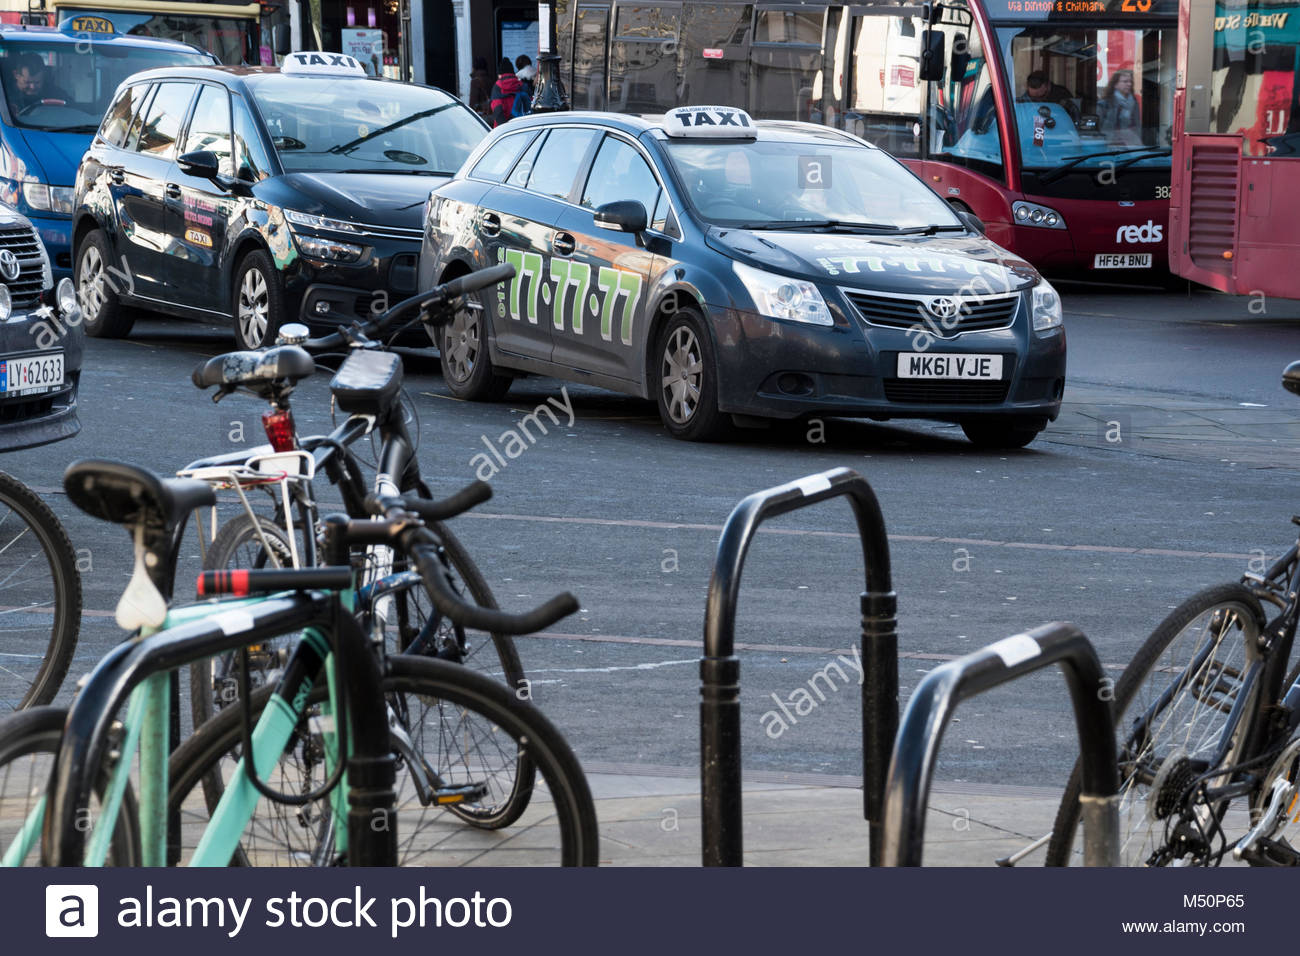 View of different types of transport - push bikes, taxi (mini) cabs with buses in the background, Salisbury, Wiltshire, Stock Photo